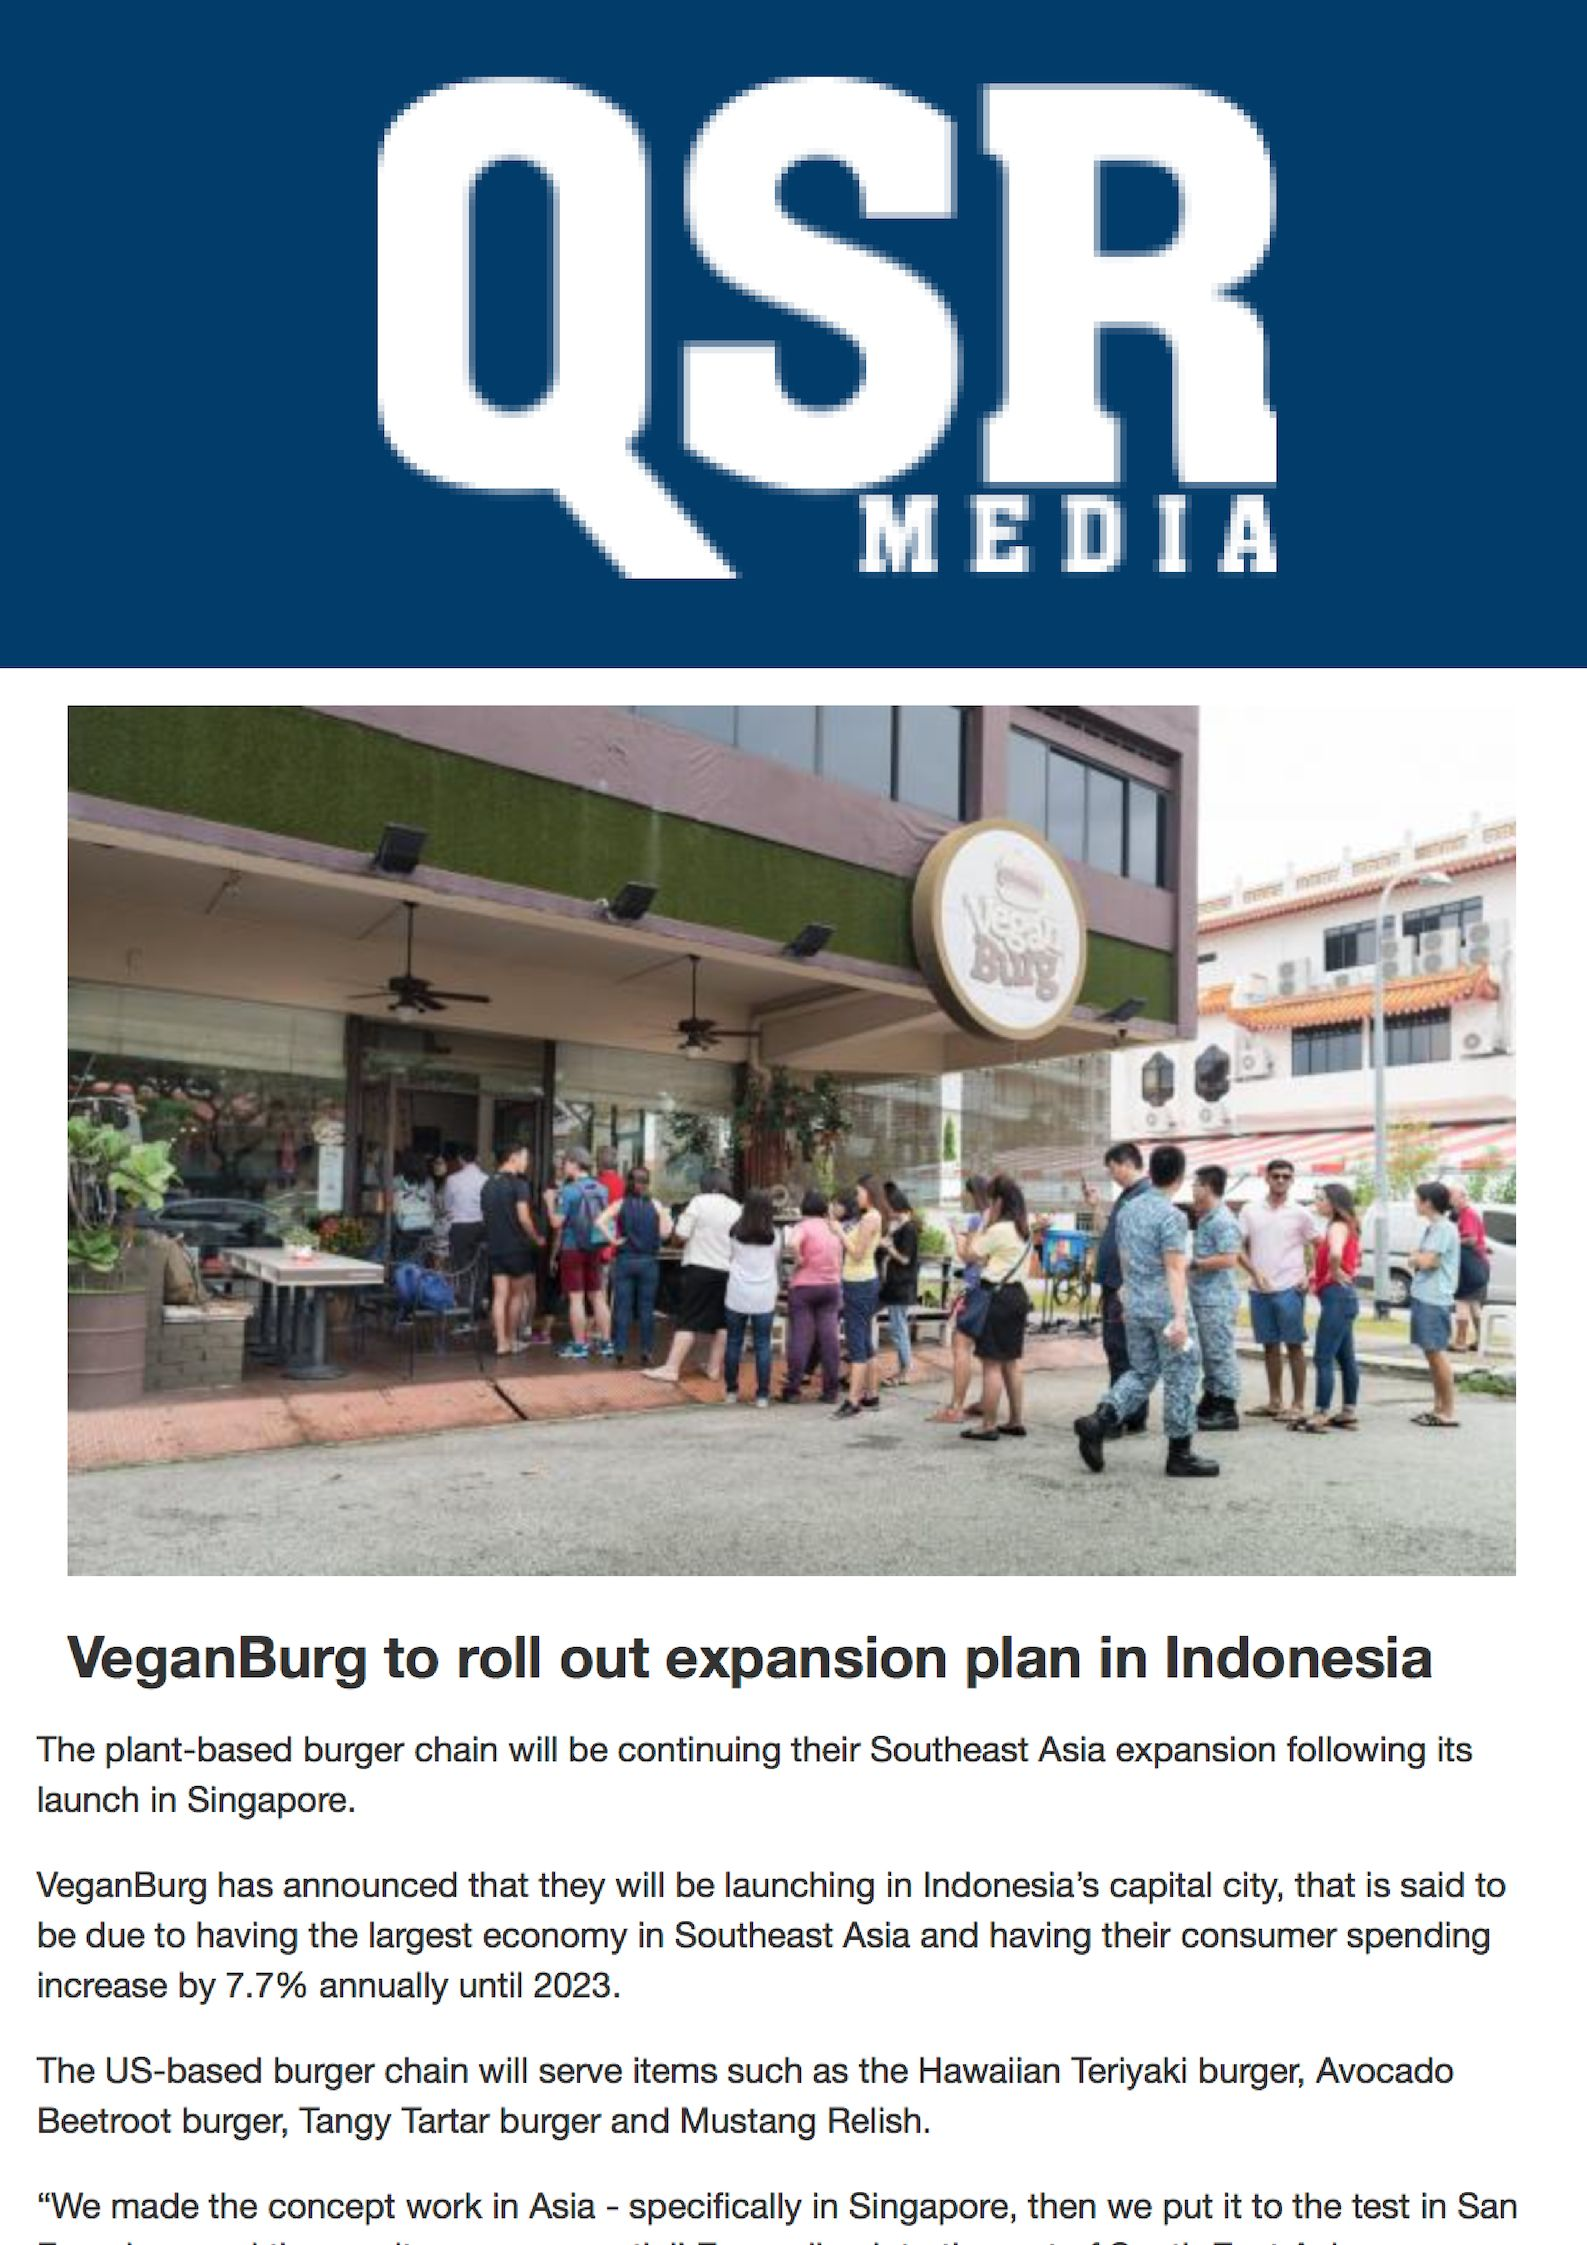 QSR Media_ VeganBurg to roll out expansion plan in Indonesia.jpg